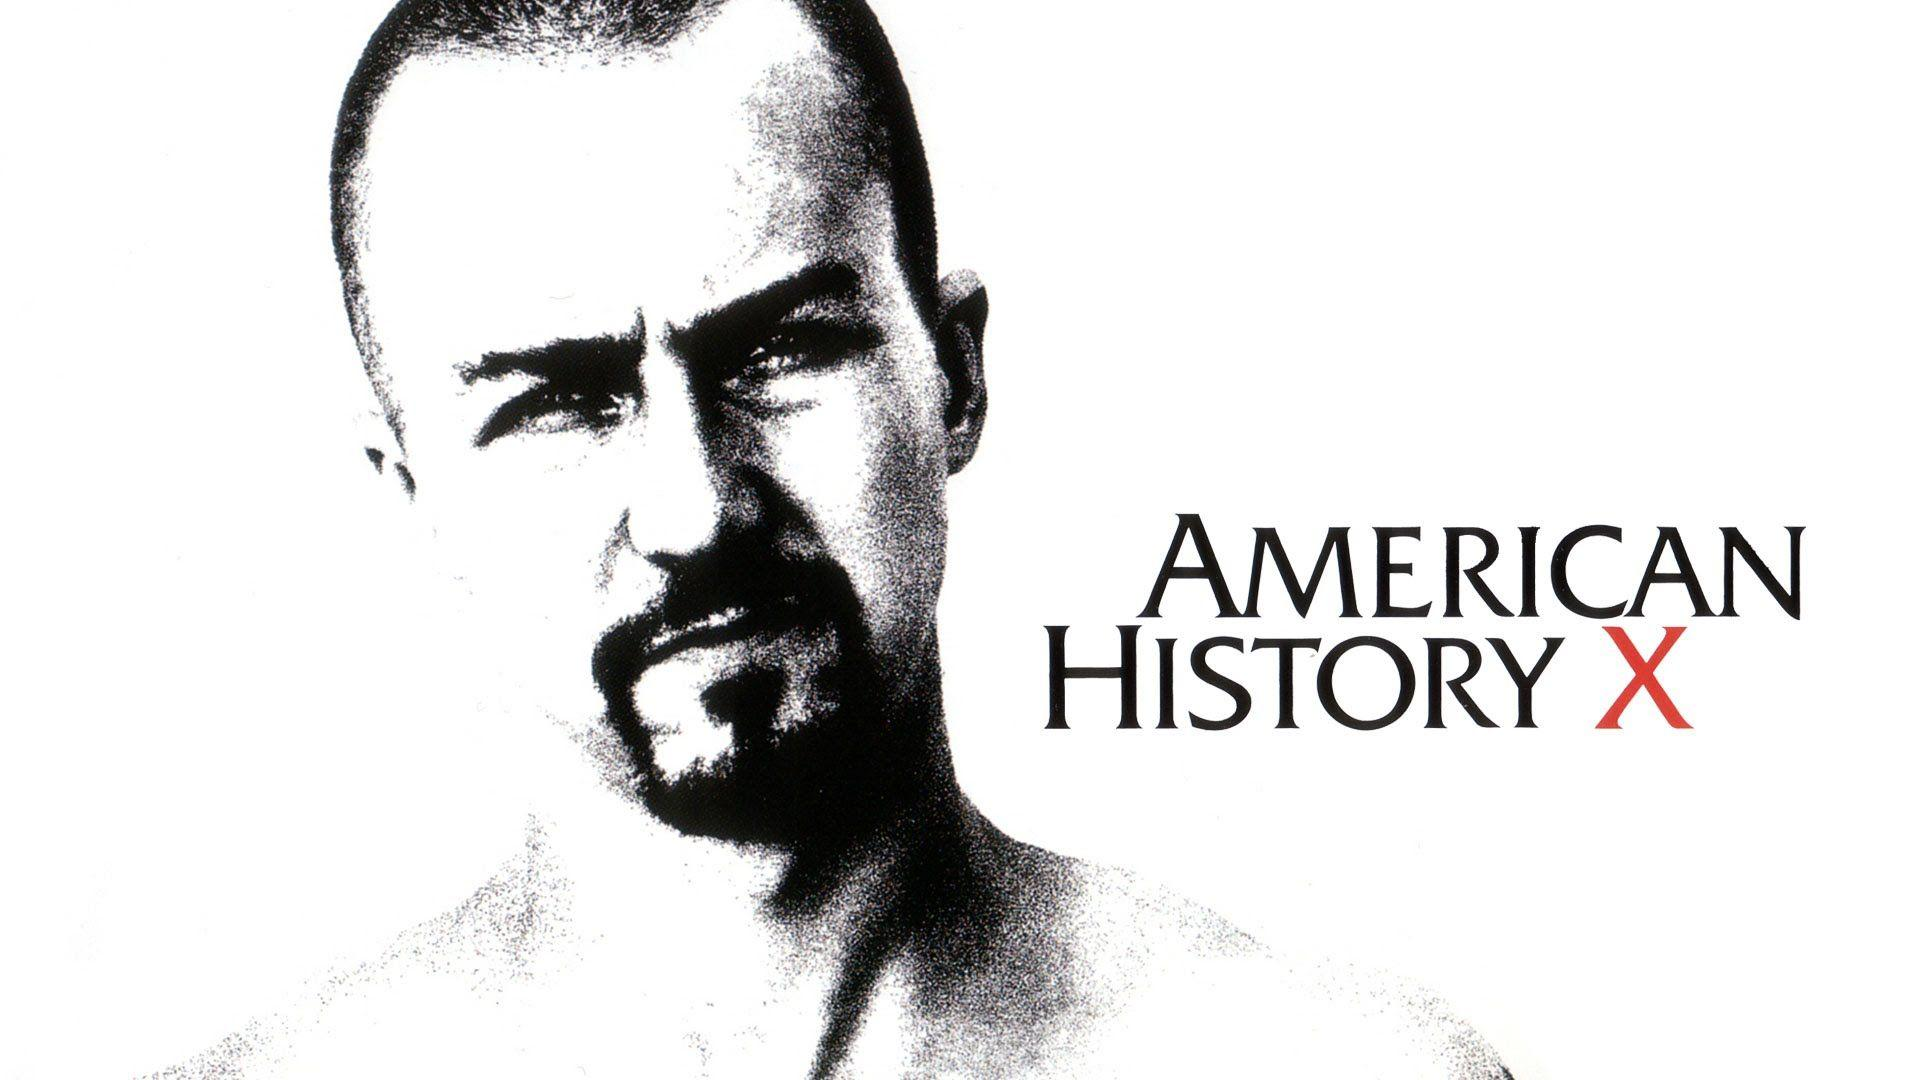 American History X Wallpapers, Fine HDQ American History X Photos